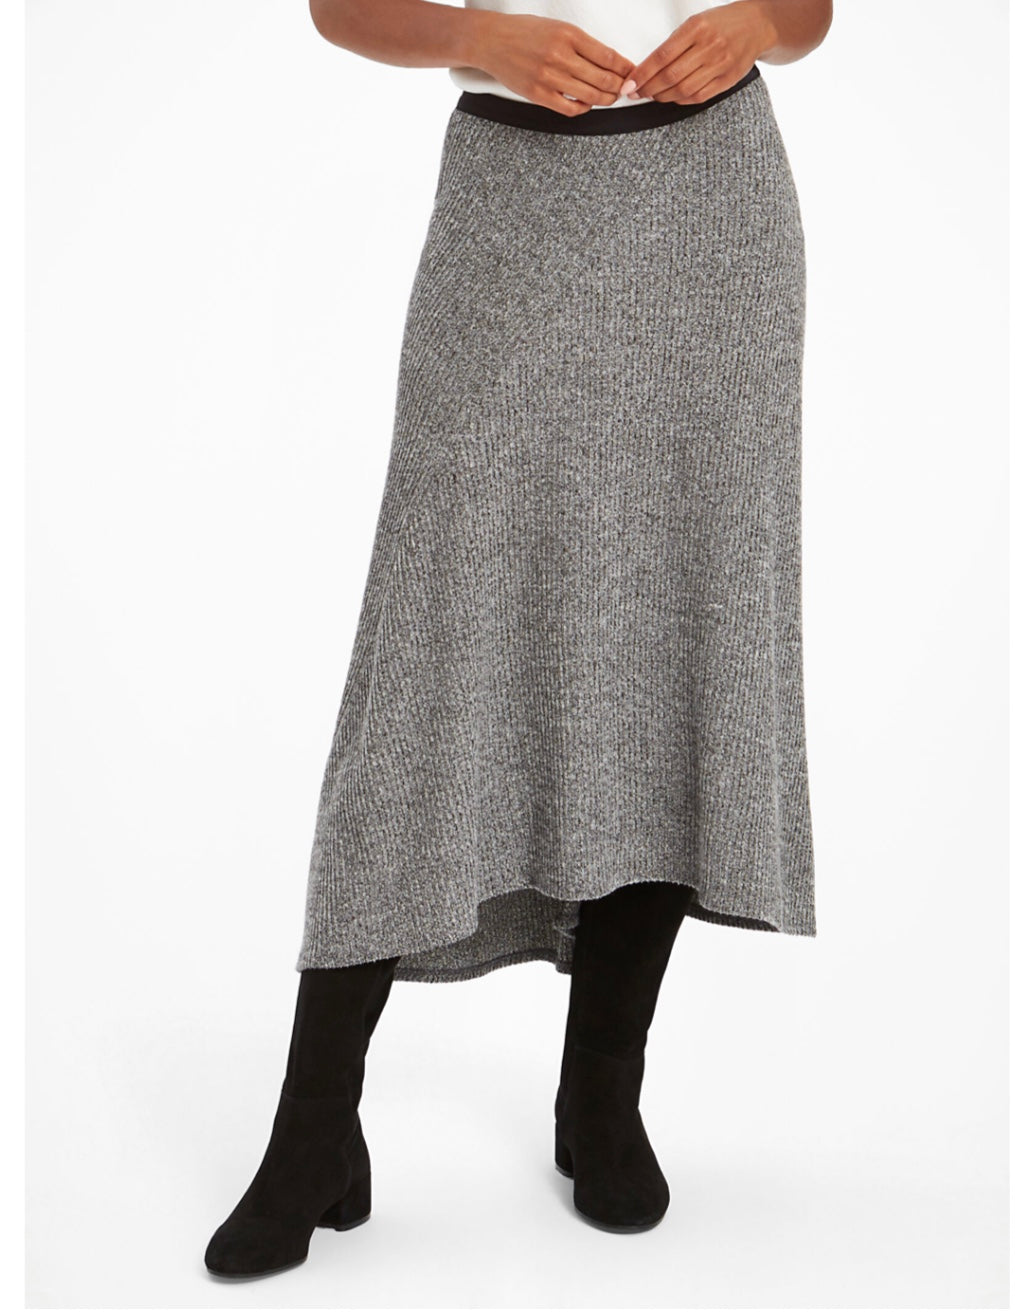 cozy aside lg knit skirt-F20-1312